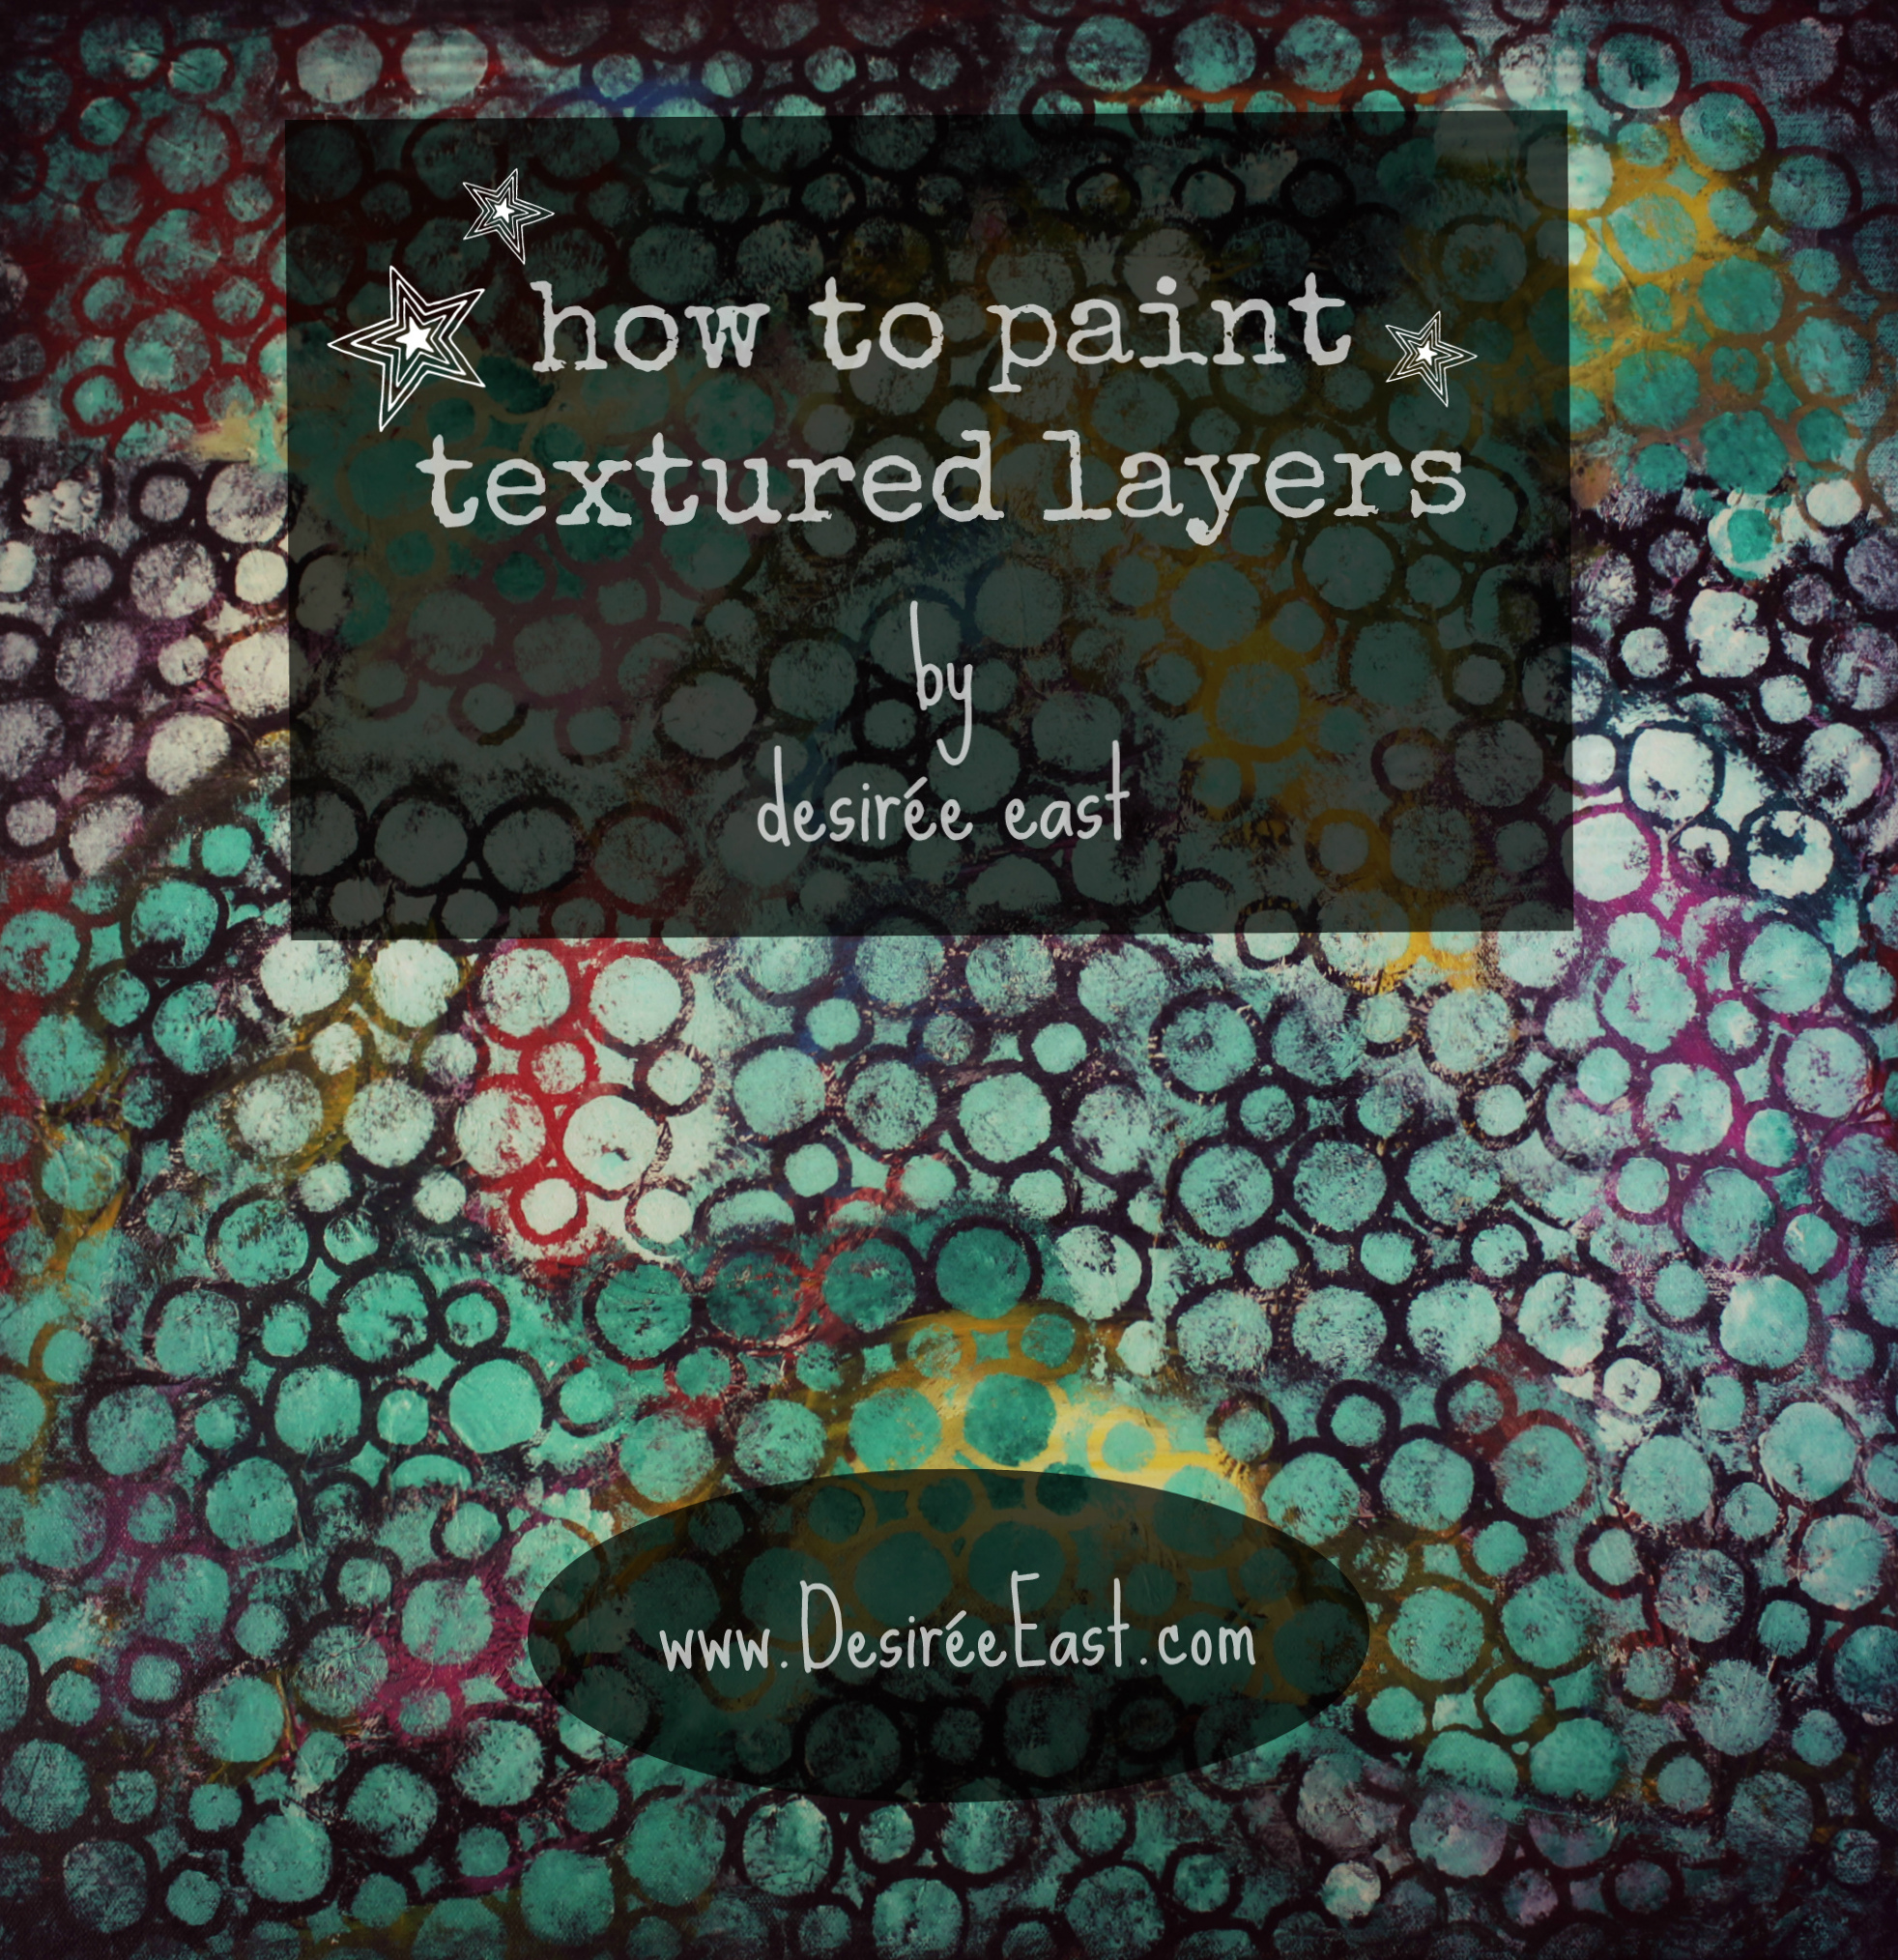 how-to-paint-textured-layers-by-desiree-east.jpg